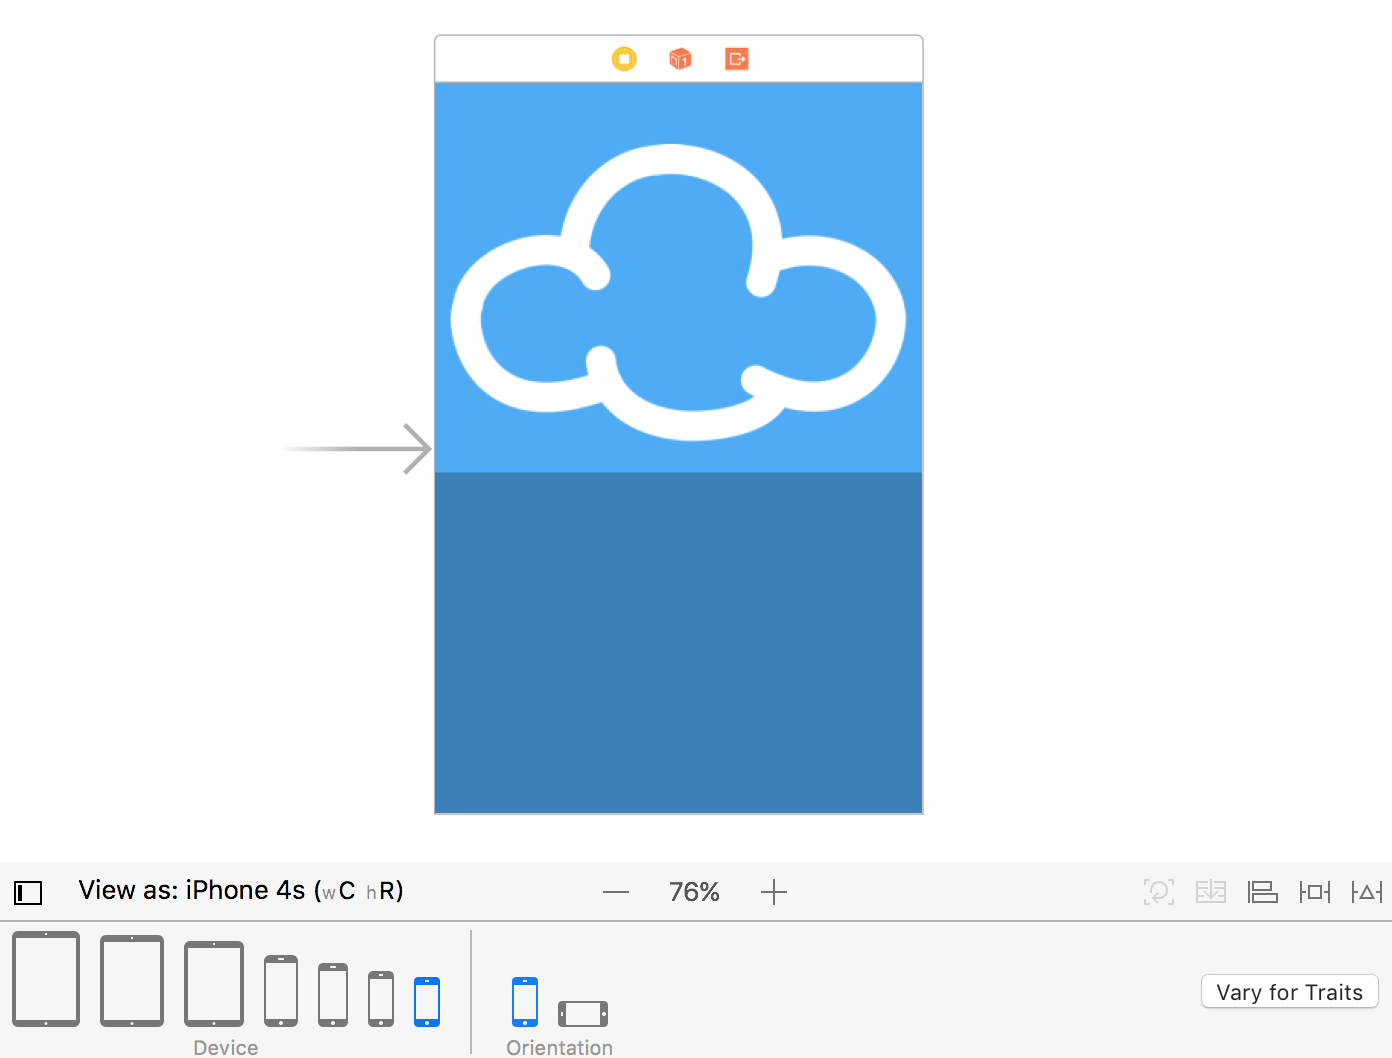 Adaptive Layout Tutorial In Ios 11 Getting Started That Configuration Albeit For A Single Switch Is Shown Here To View Your Landscape Mode Select The Orientation Area Of Trait Chooser